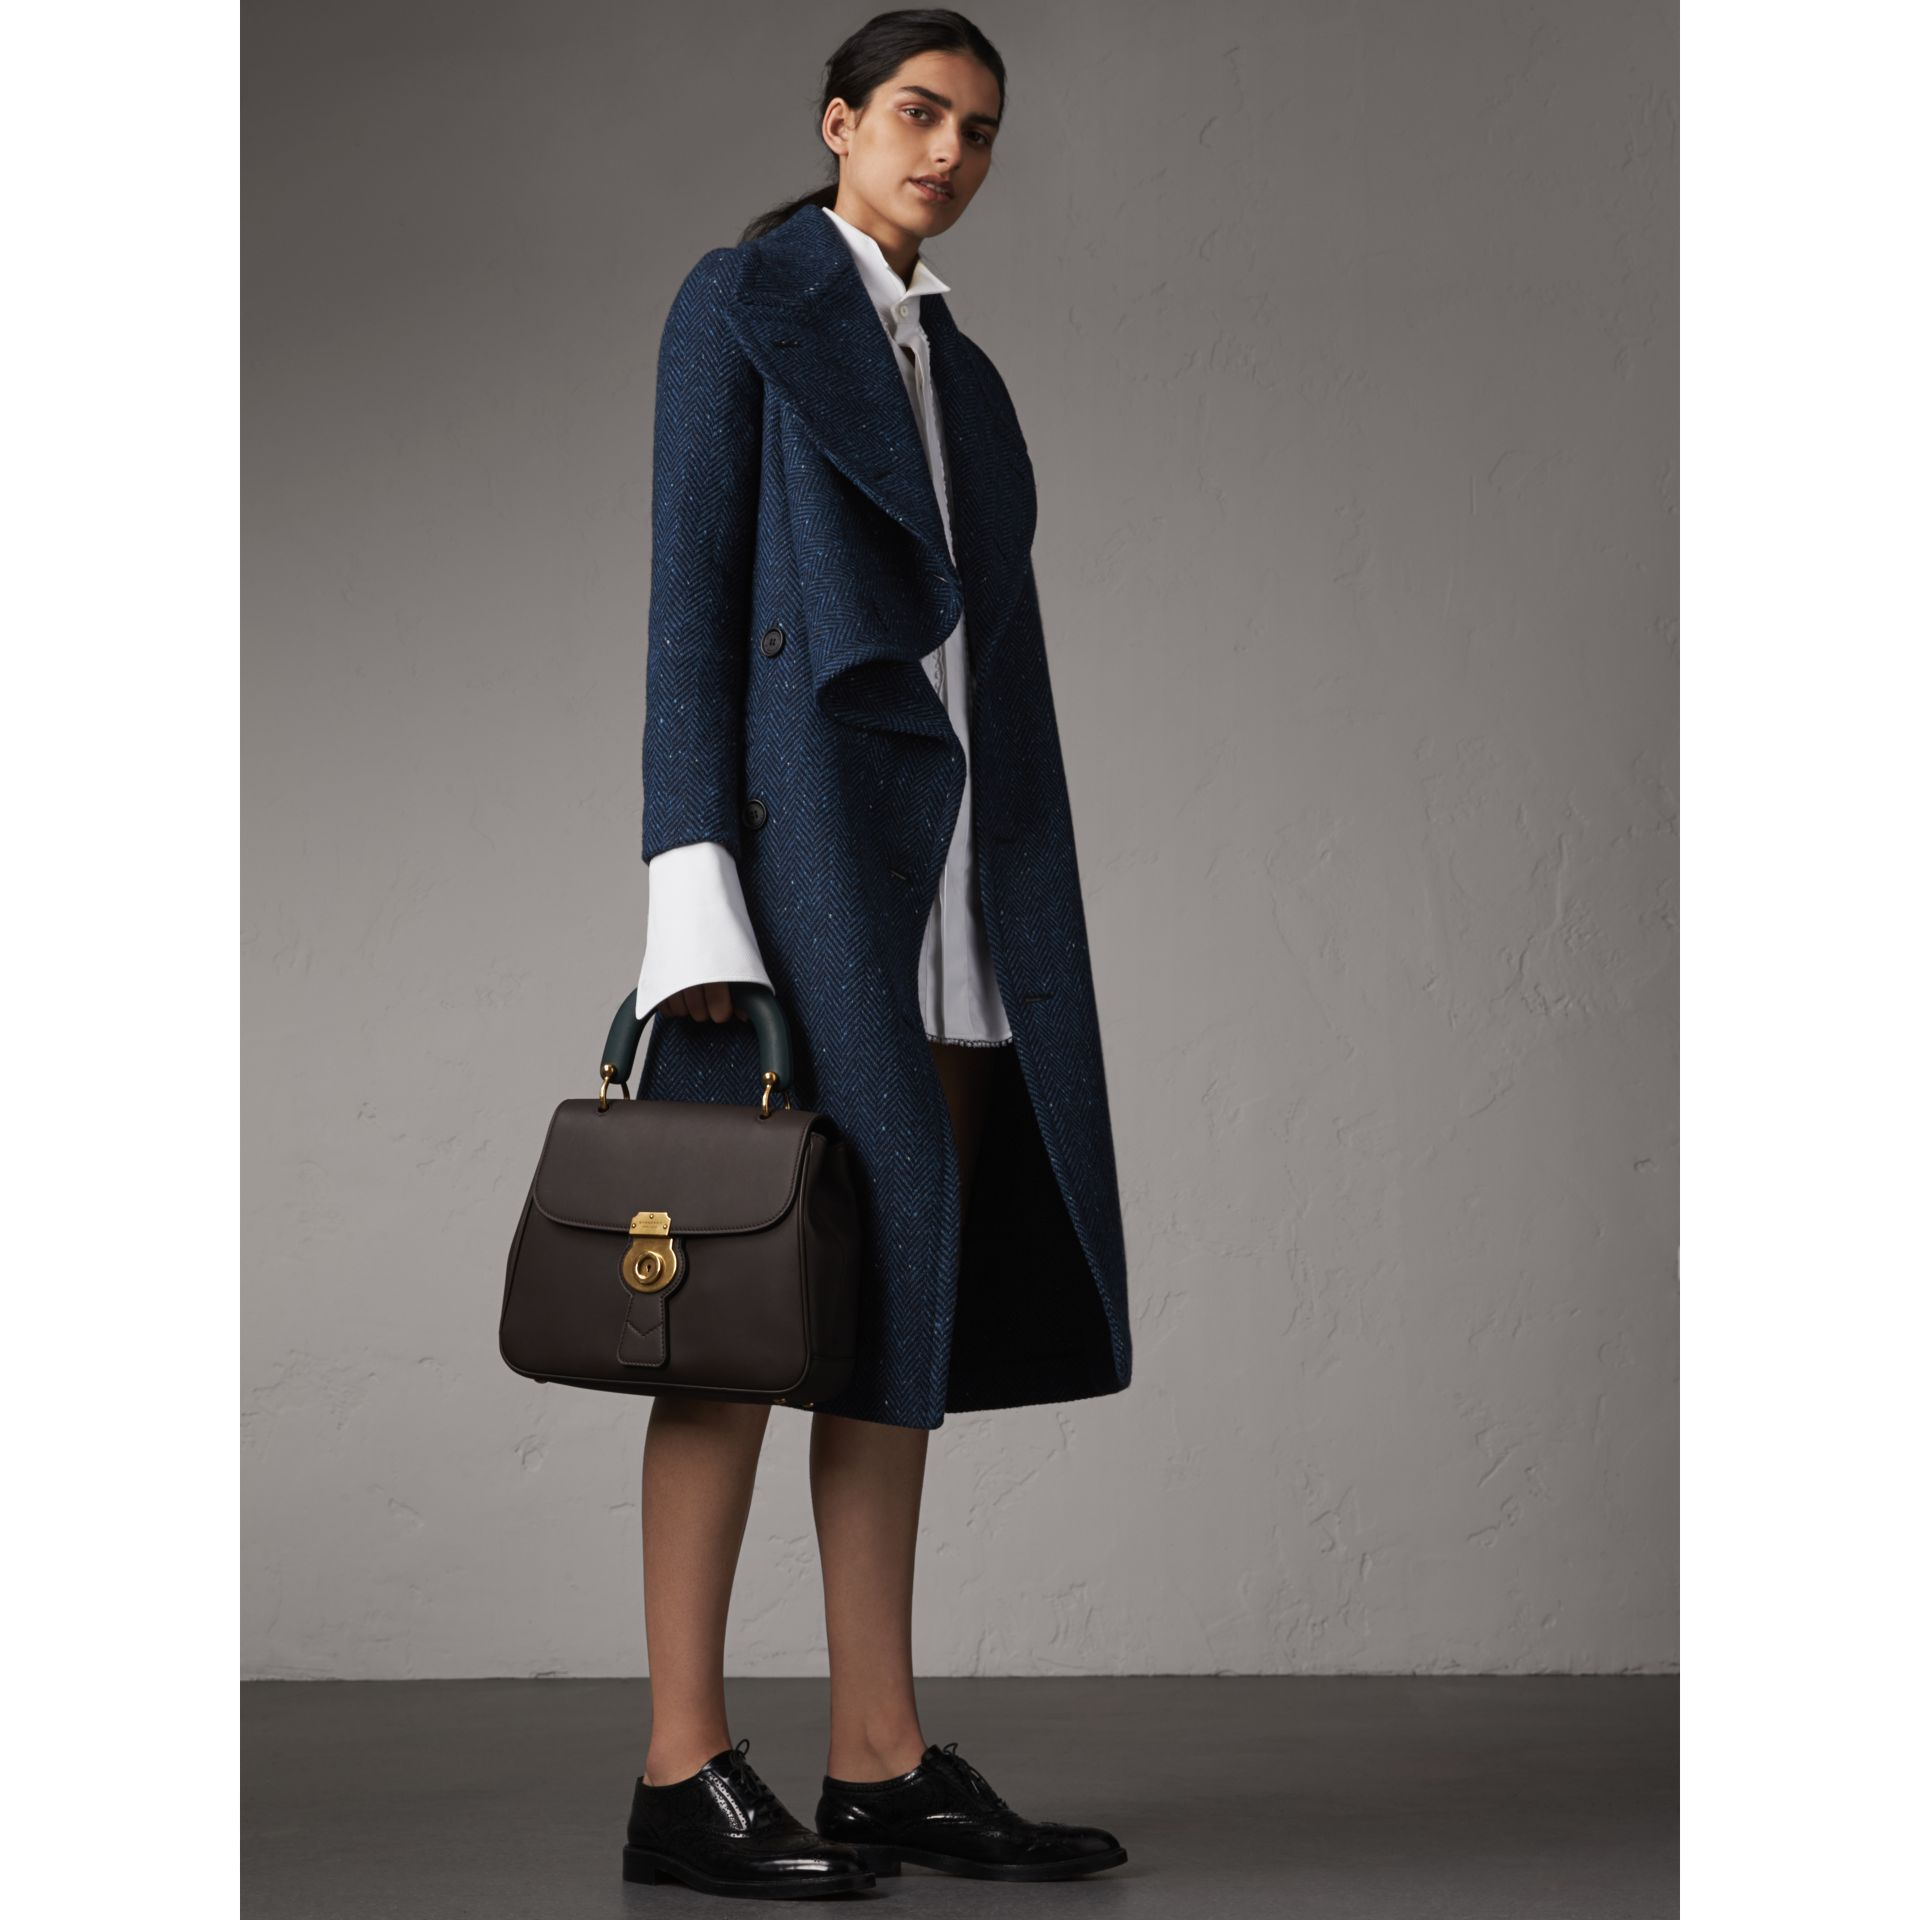 Herringbone Wool Cashmere Tweed Asymmetric Coat in Navy - Women | Burberry - gallery image 1